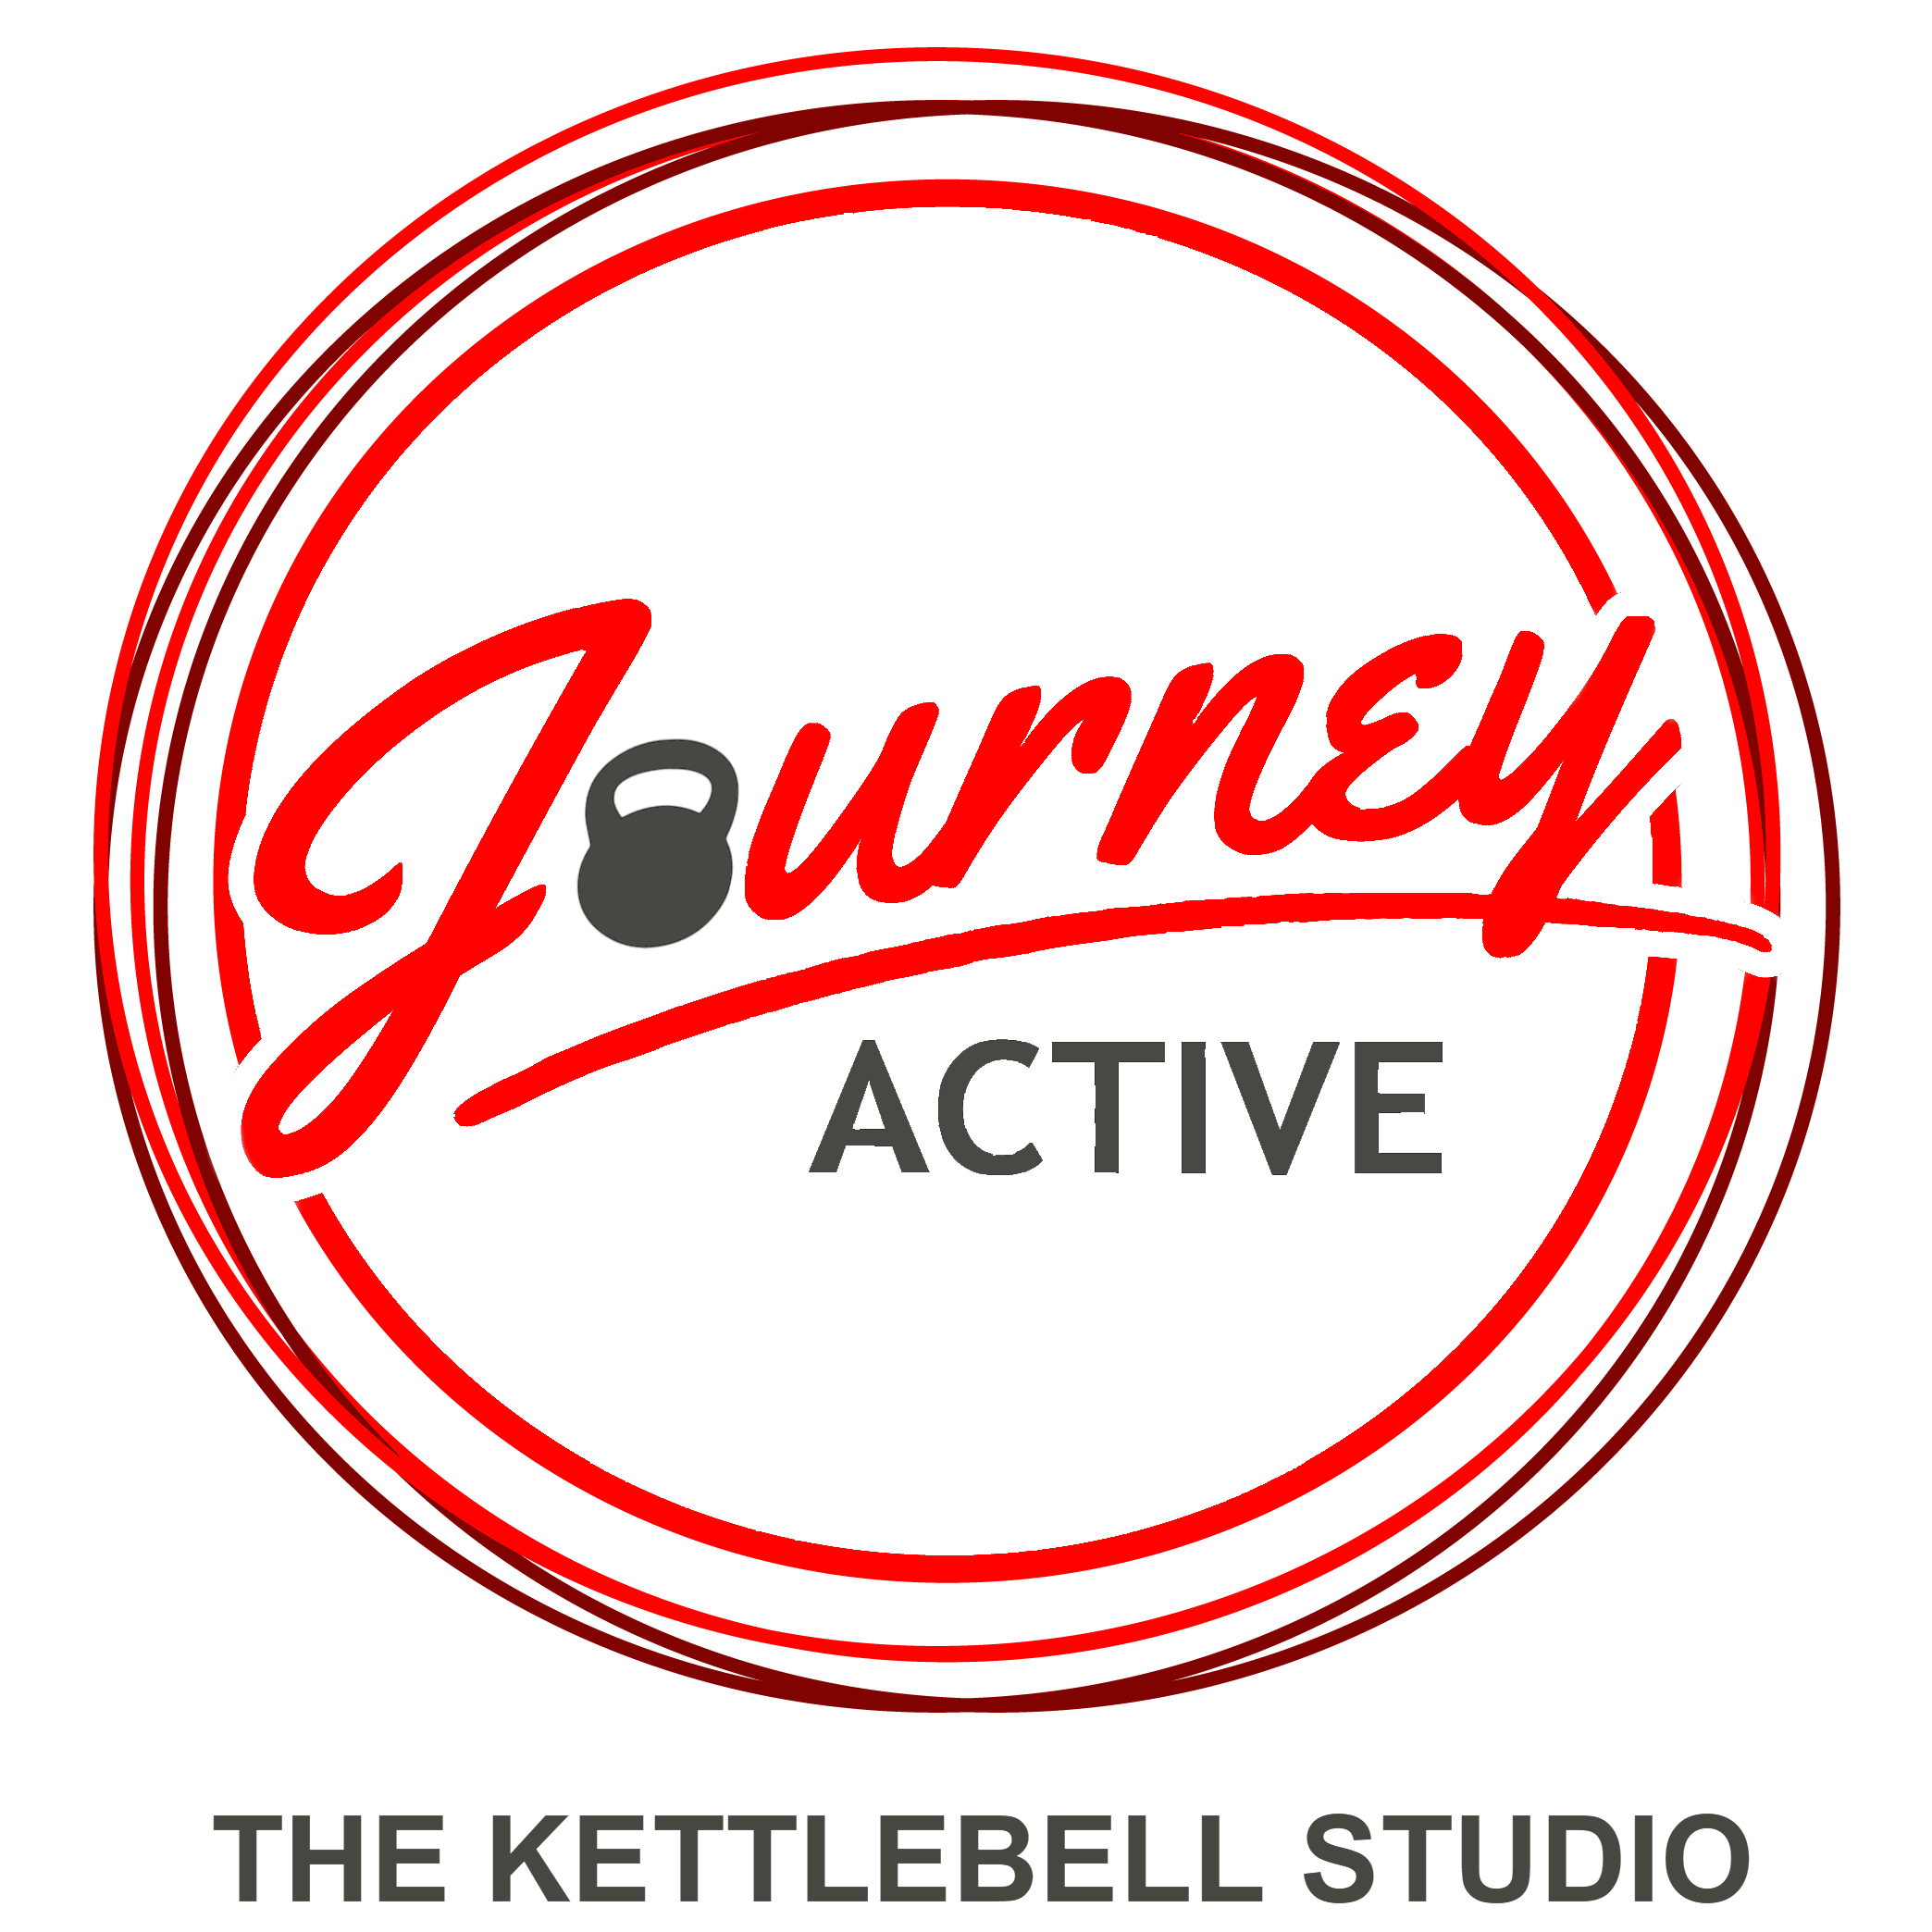 Journey Active, Kettlebells, Fitness, Nutrition